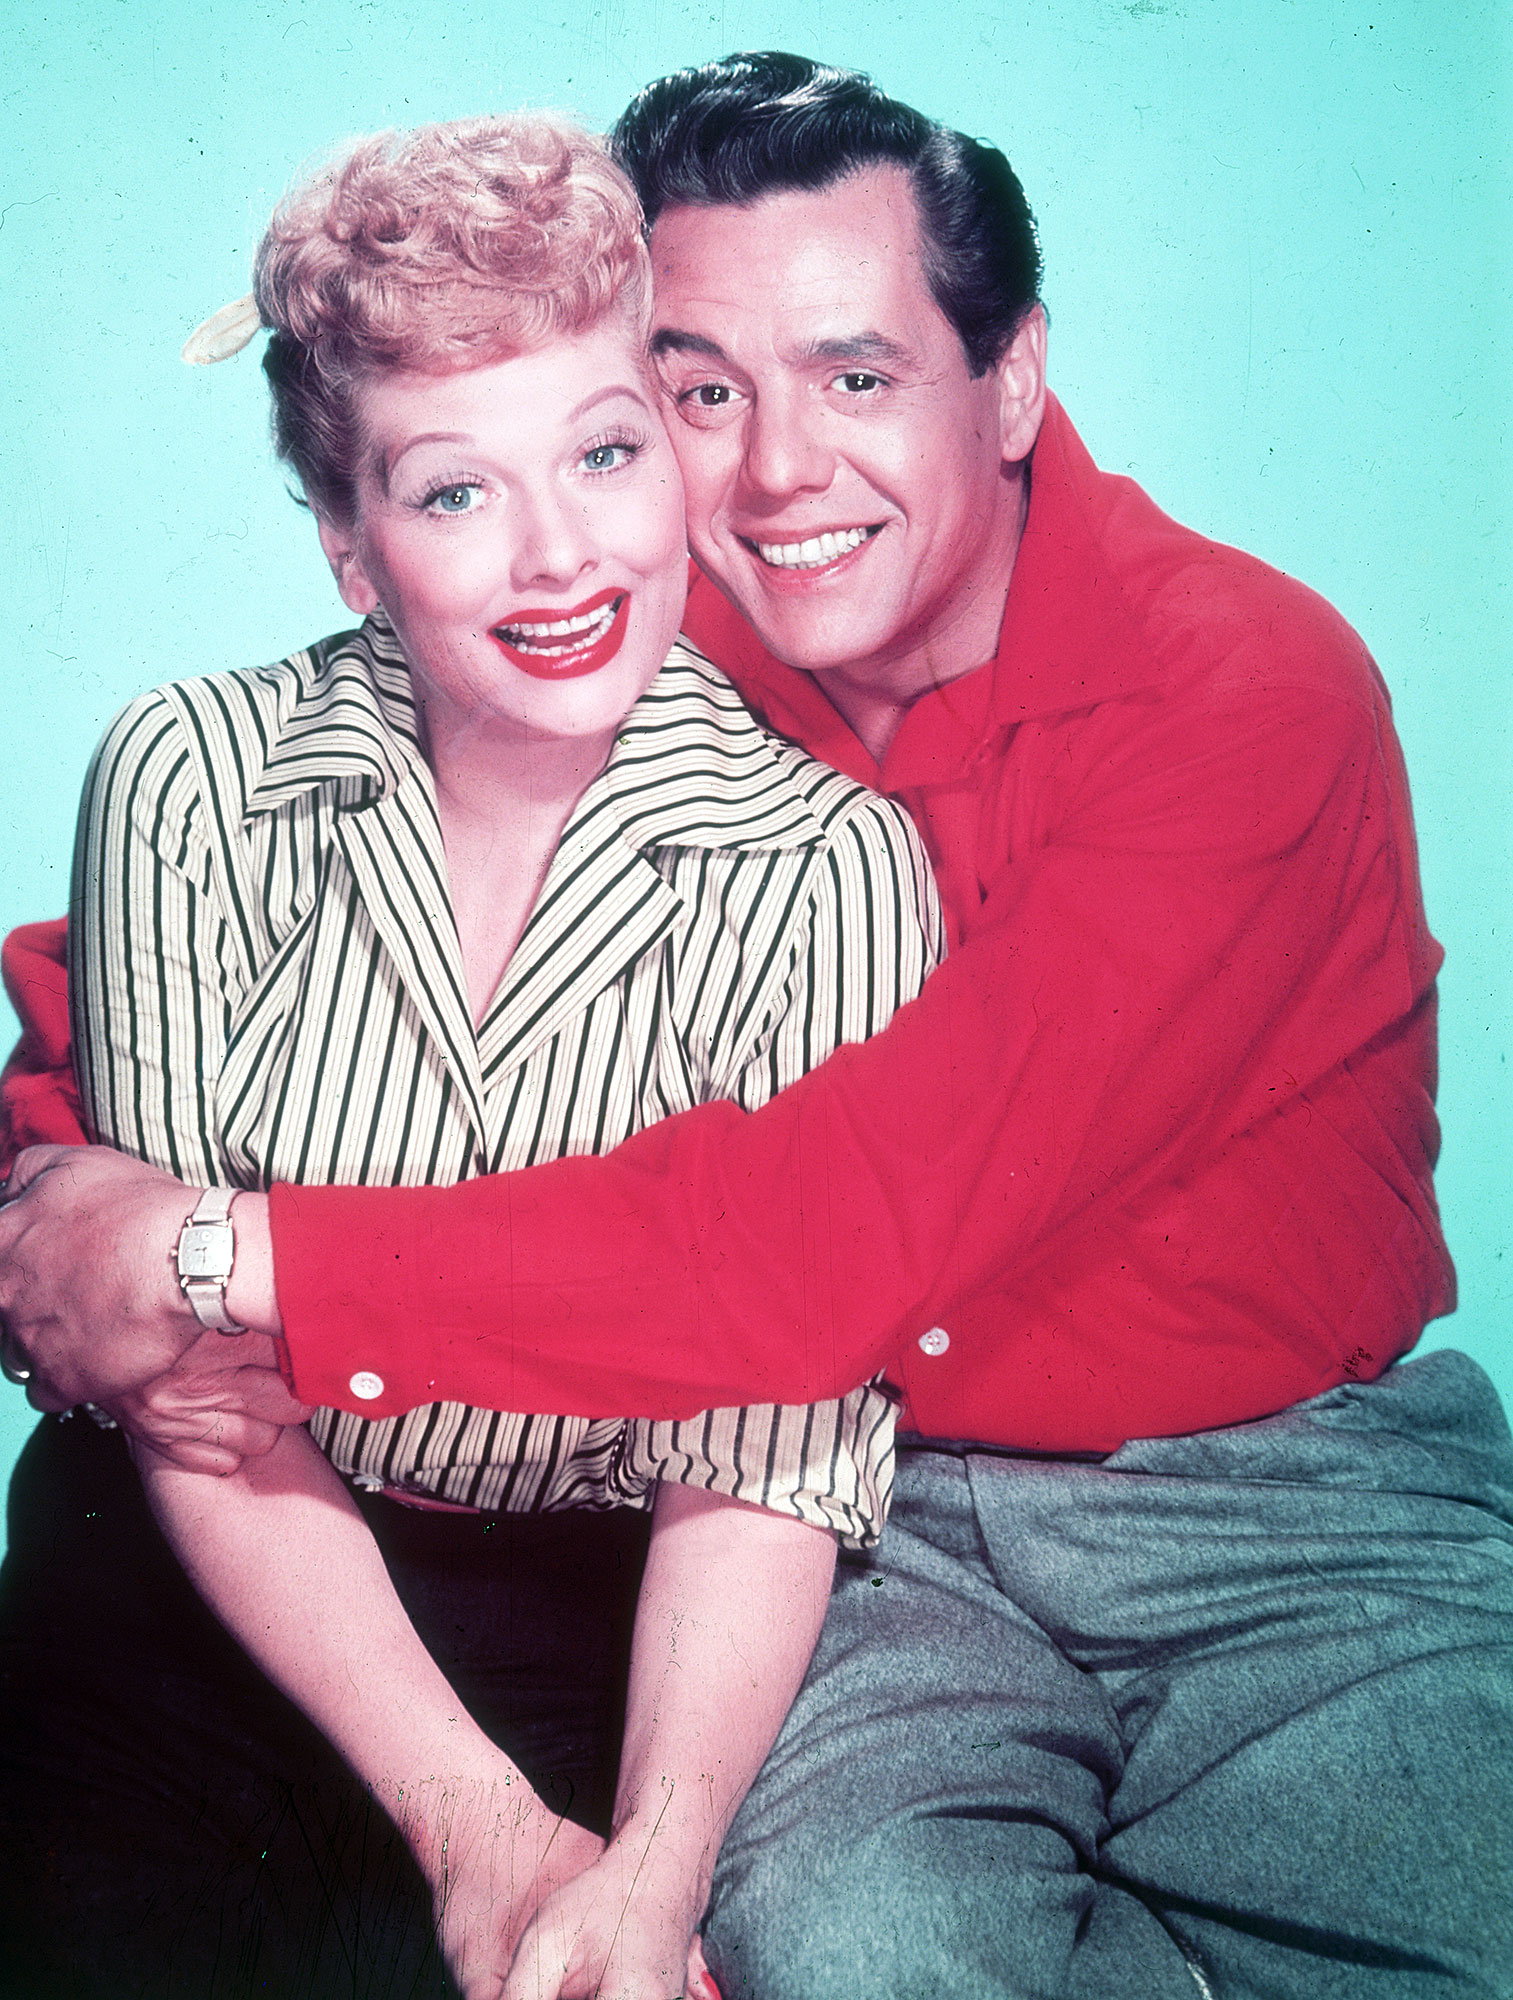 Best TV Couples I Love Lucy Lucille Ball Desi Arnaz - Show: I Love Lucy Actors: Lucille Ball and Desi Arnaz Network: CBS Seasons: 6